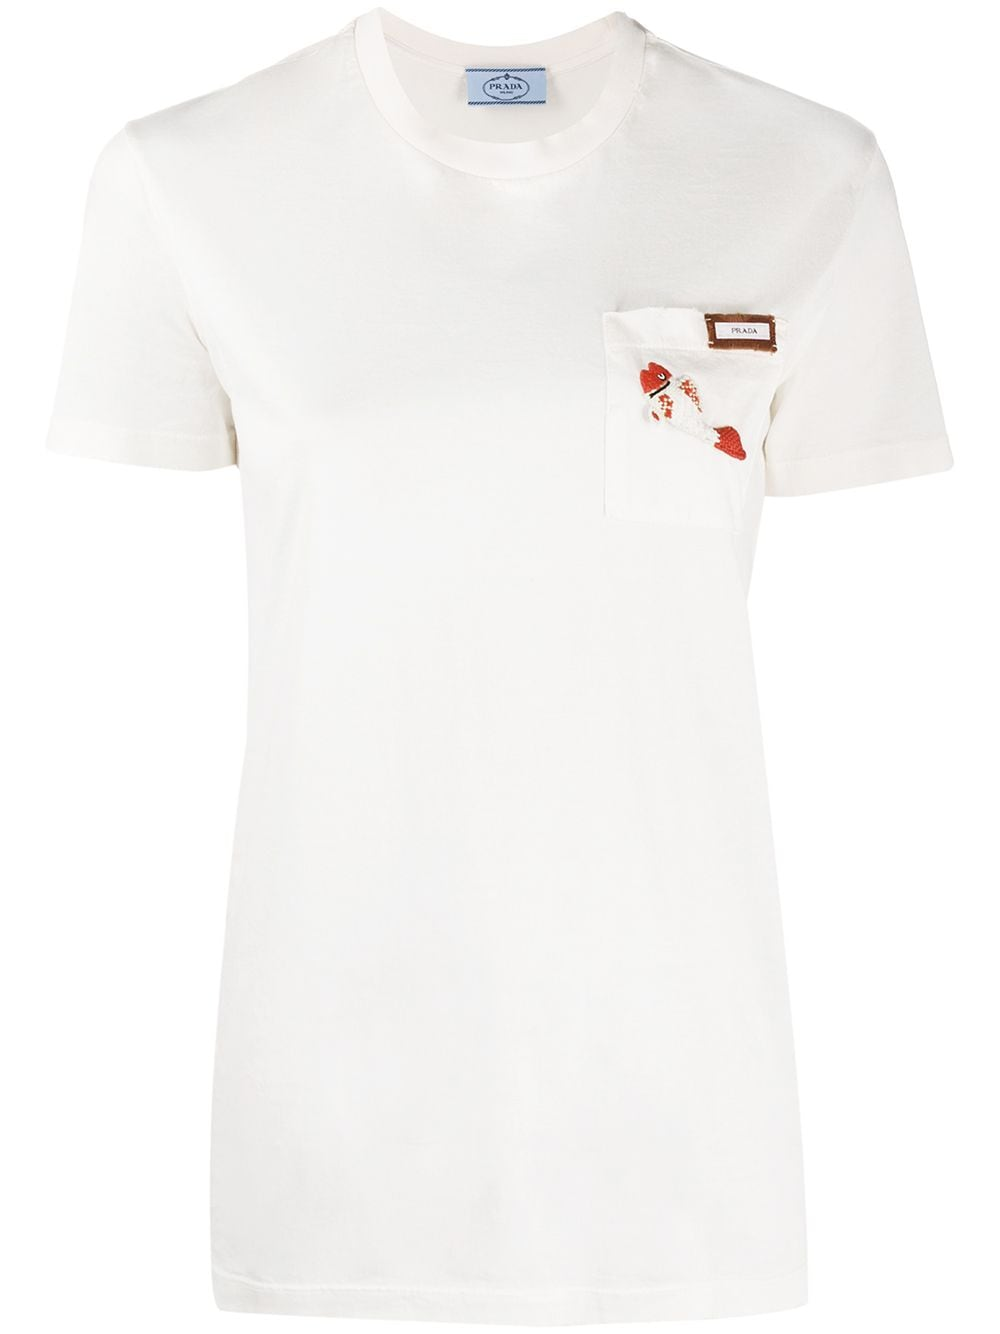 Picture of Prada   T-Shirt Jersey